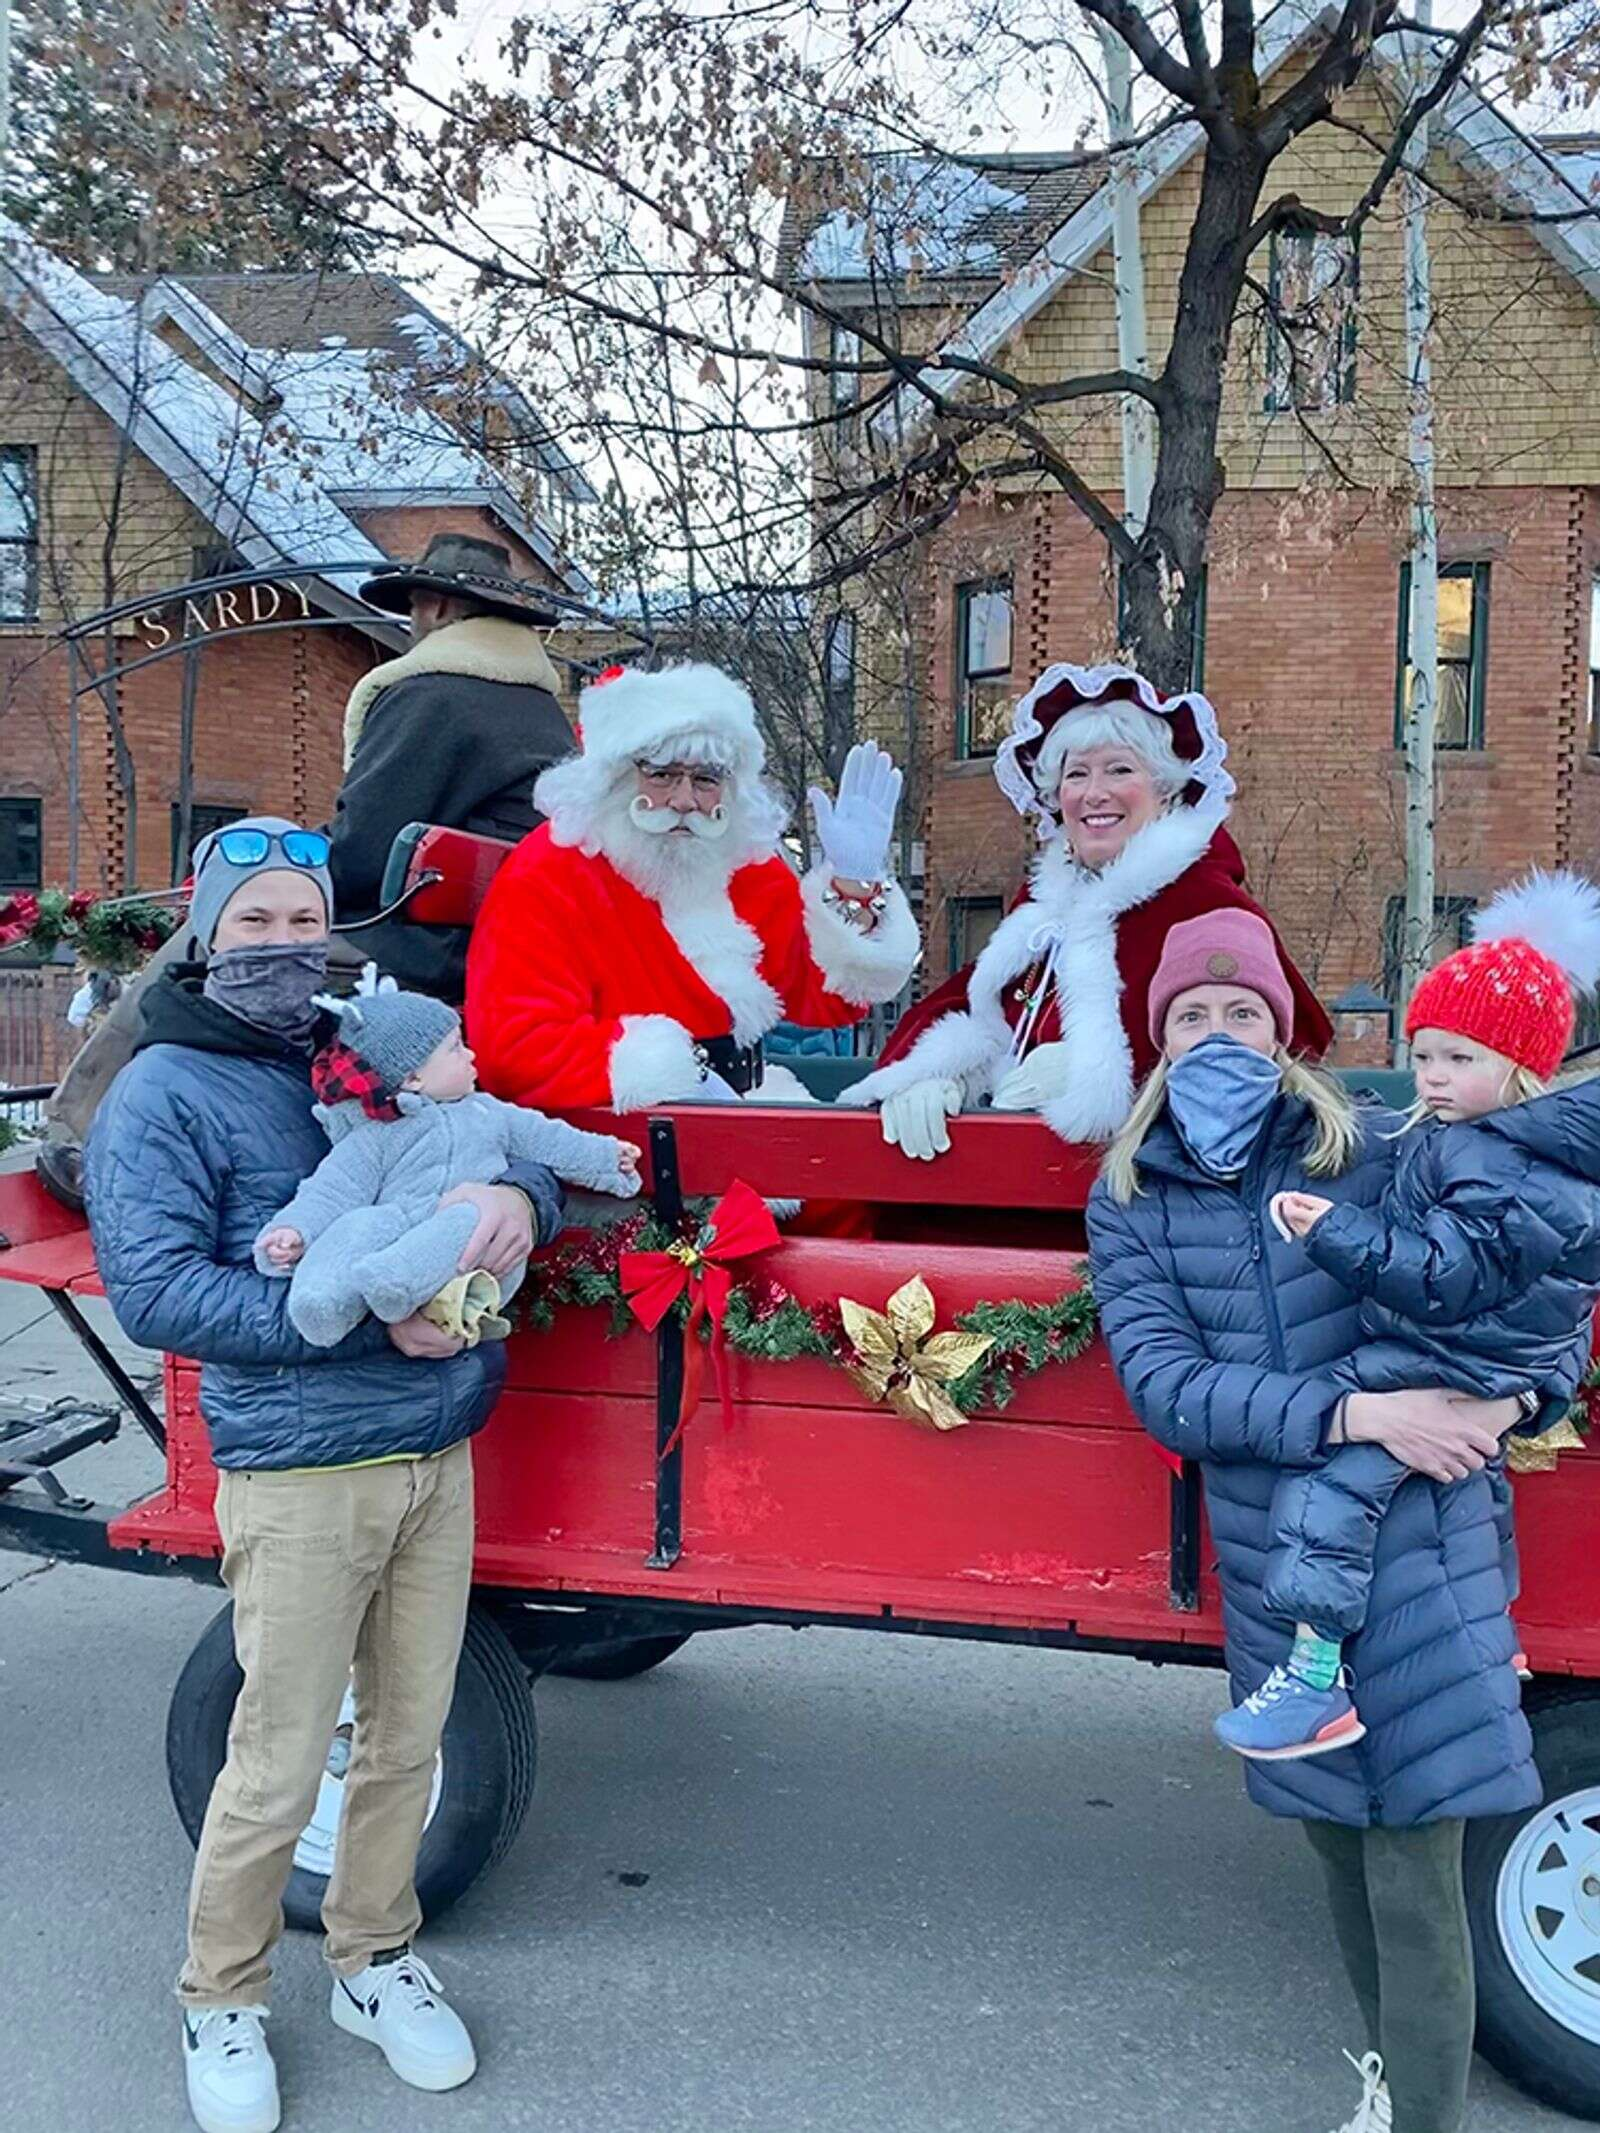 Chace and Chelsey Dillon with their children, Charlie and Stella, greet Santa and Mrs. Claus for their carriage ride around town.